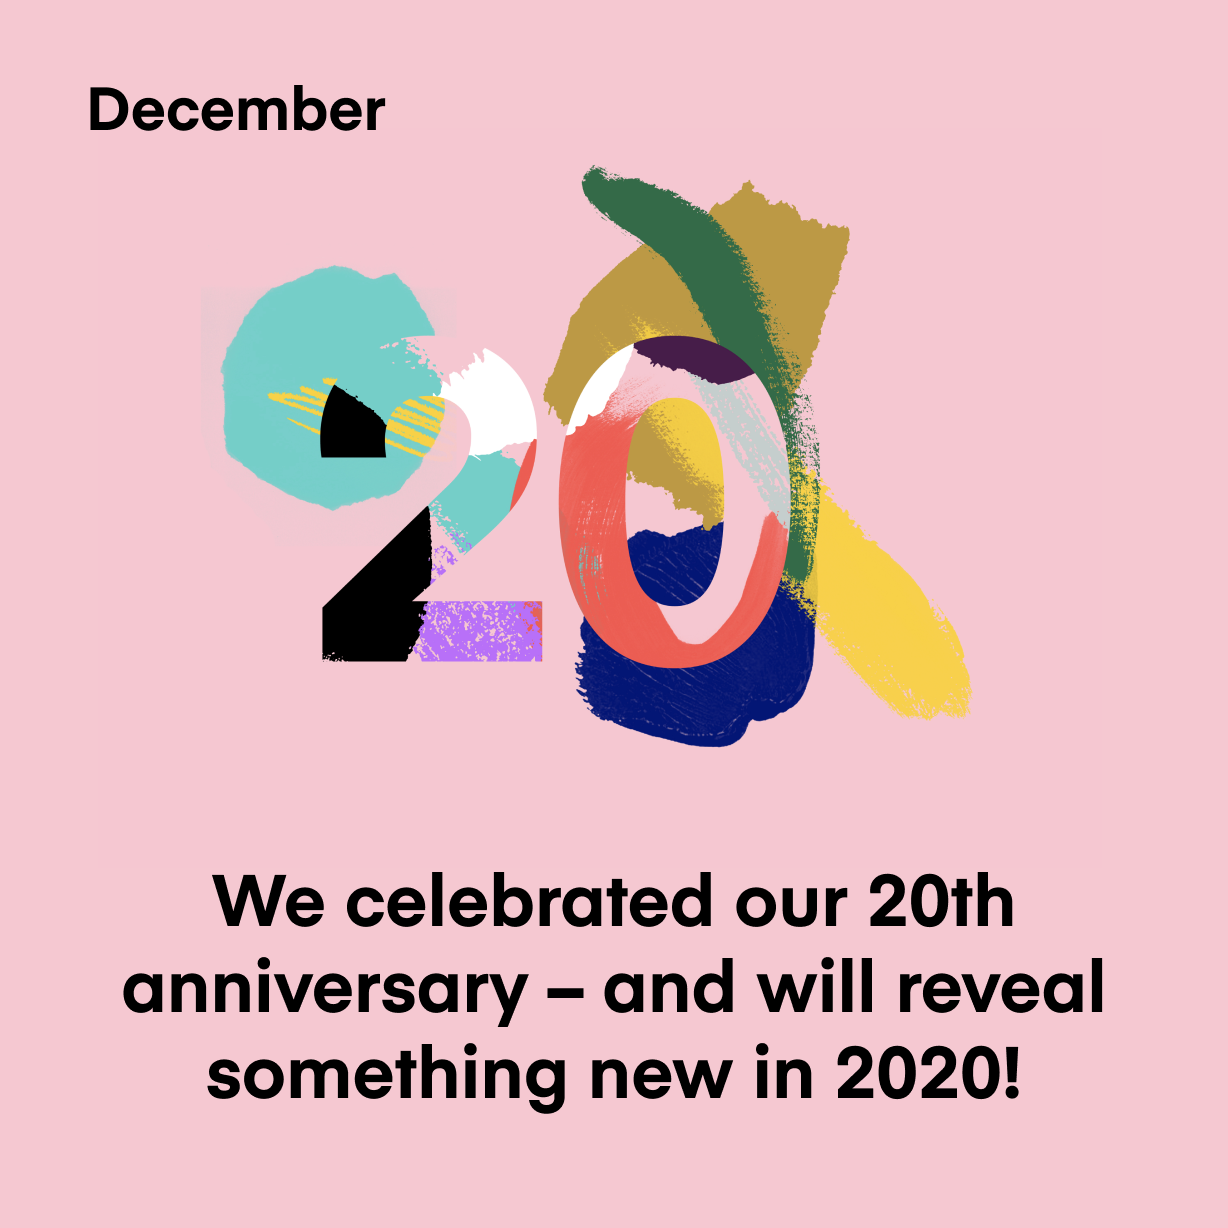 We celebrated our 20th anniversary – and will reveal something new in 2020!